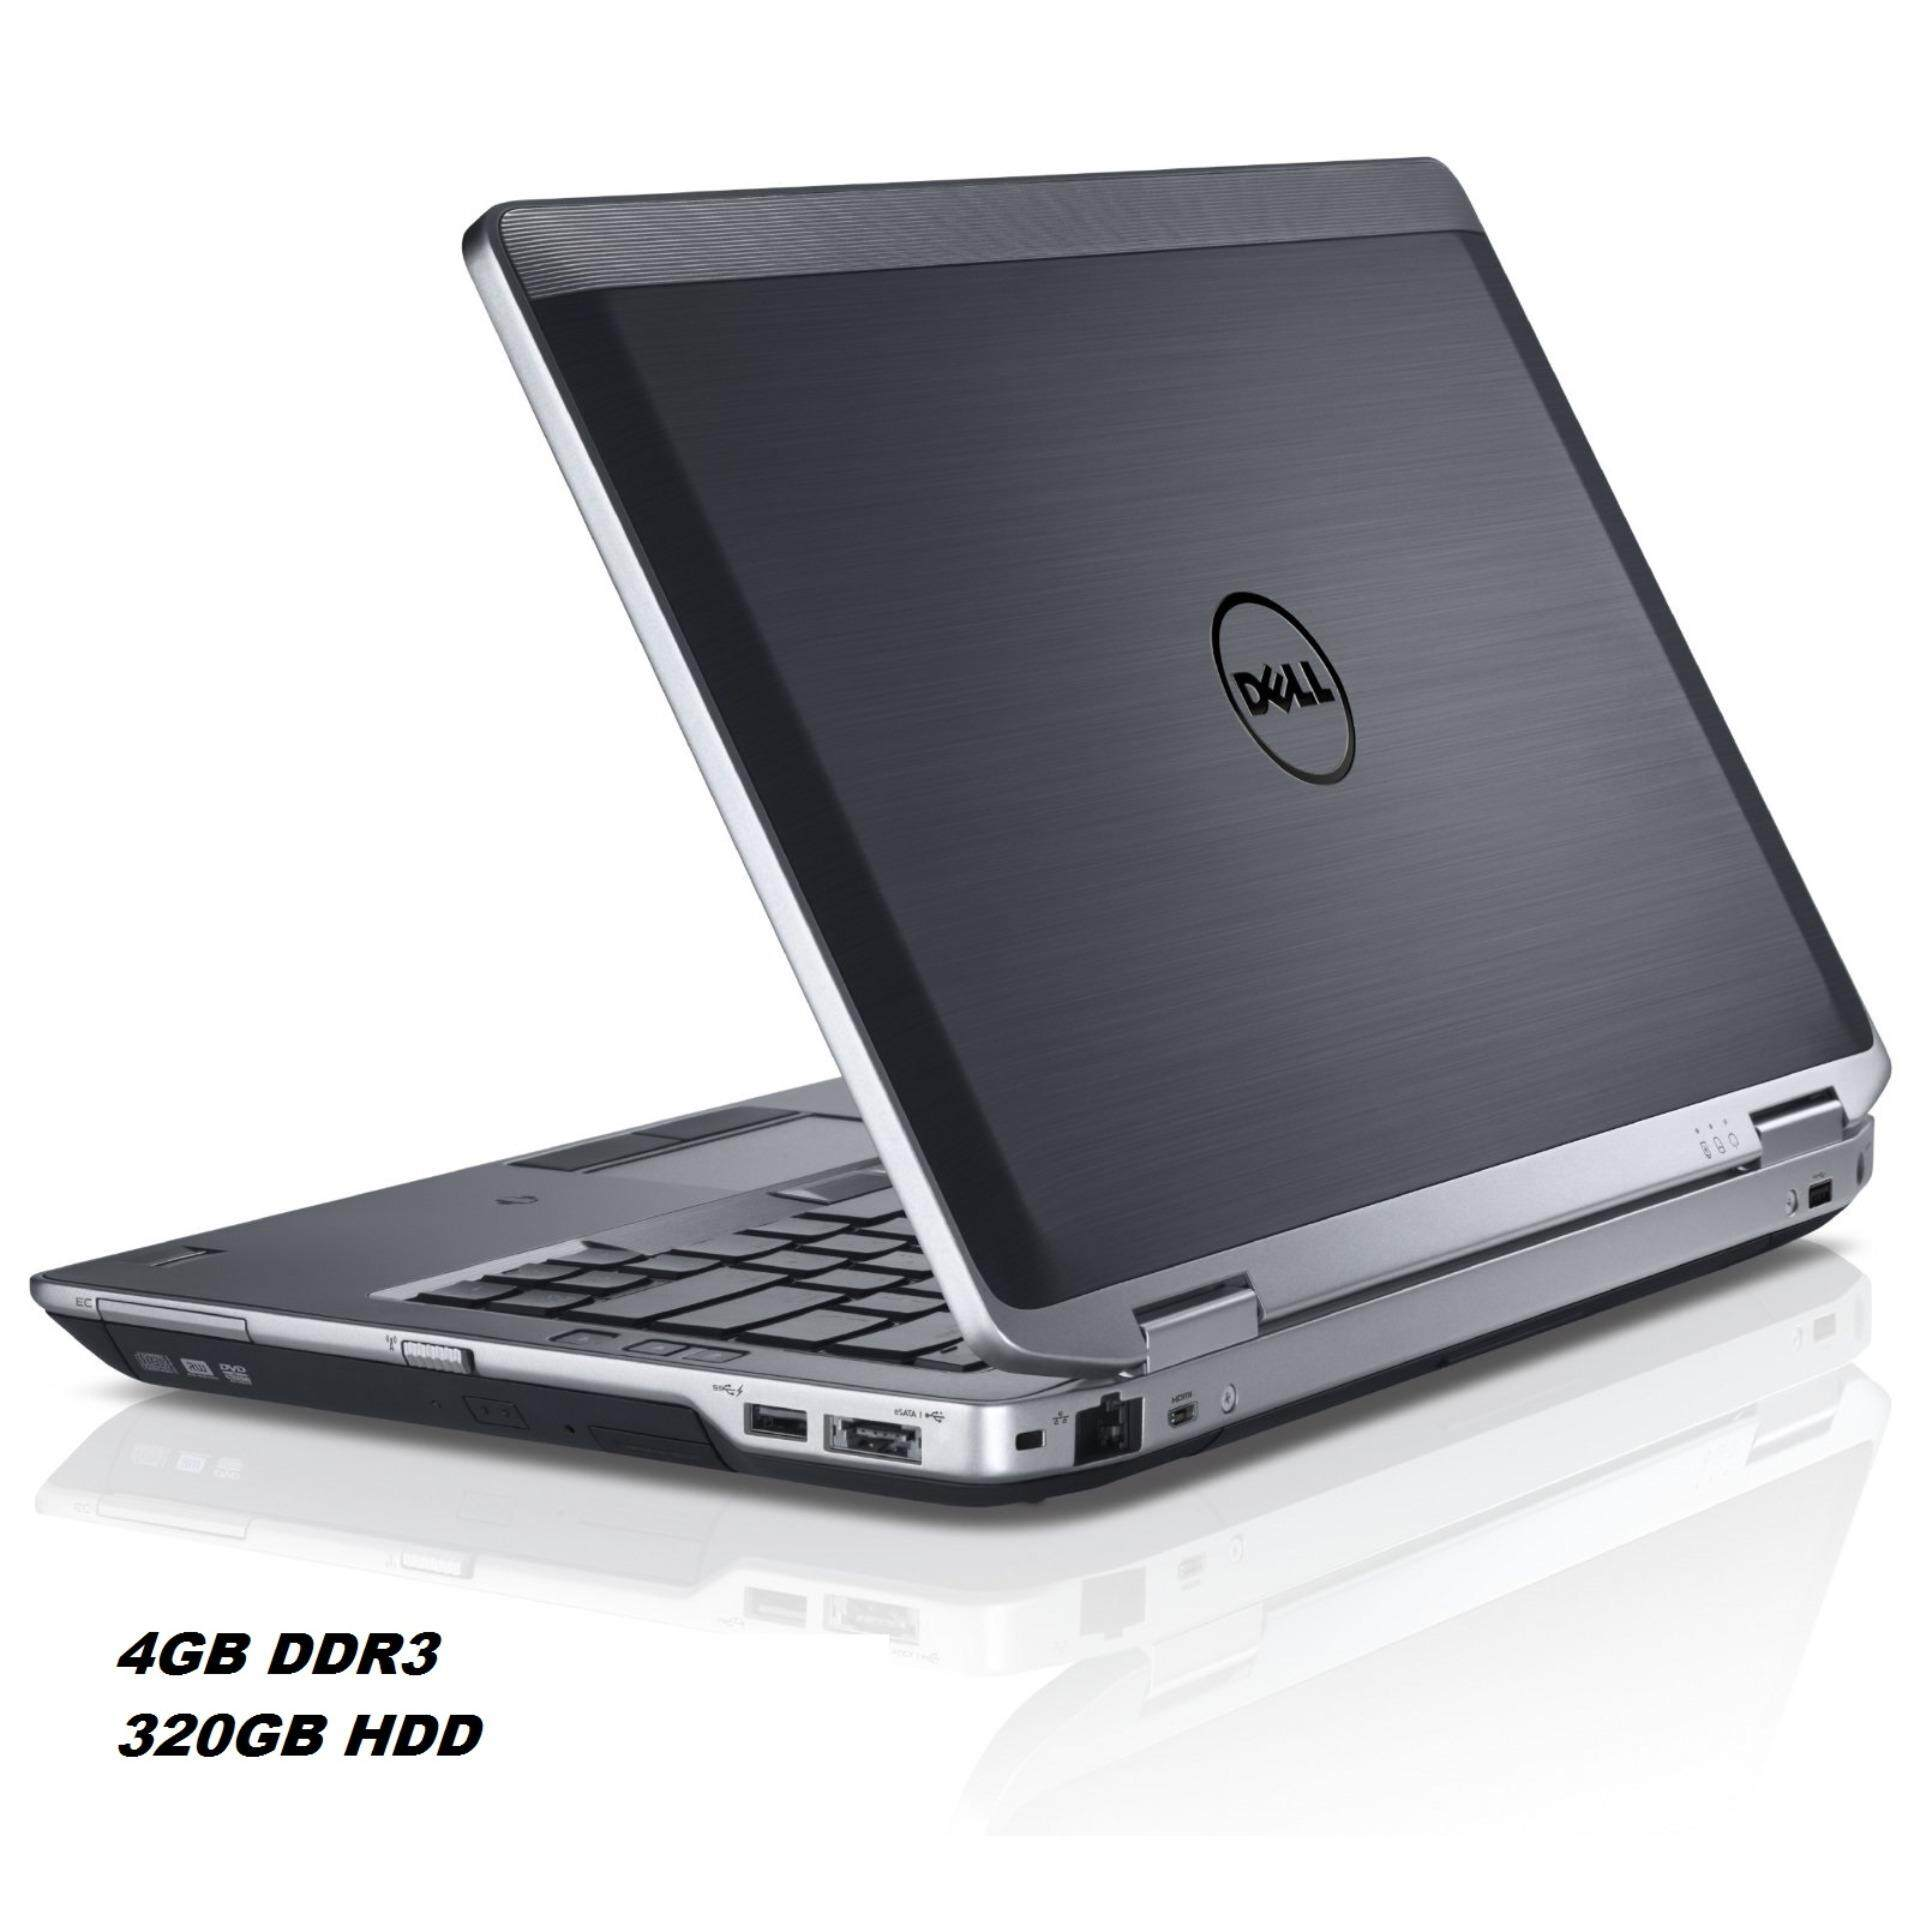 (REFURBISHED) DELL LATITUDE E6430  INTEL CORE i5 3RD GENRATION/4GB DDR3 /320GB HDD/DVD RW/14 LED/INTEL HD GRAPHIC/ WIN 7 PRO Malaysia